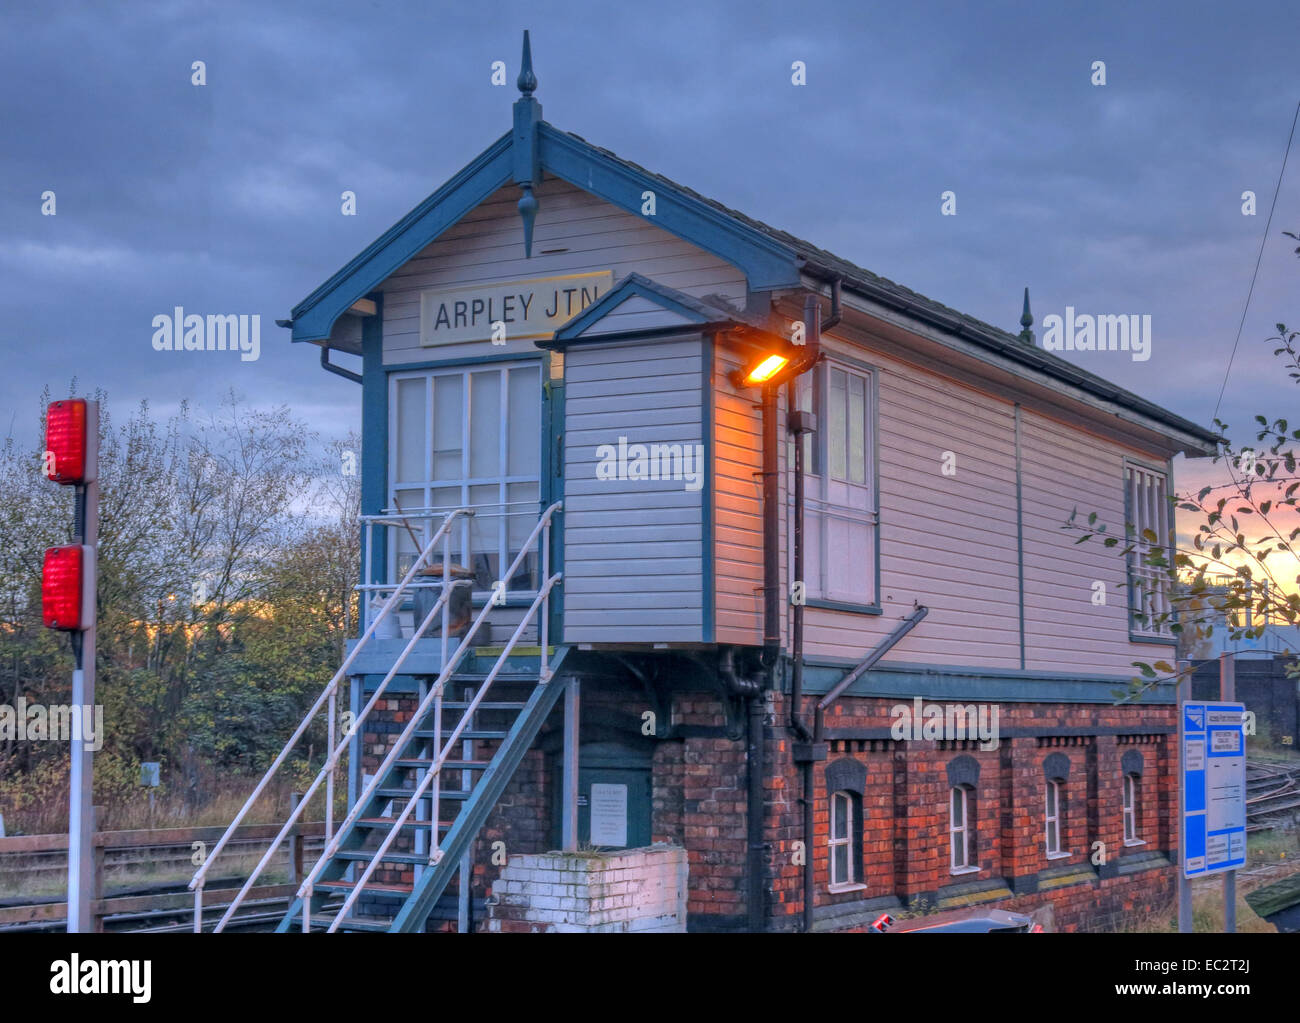 Jc,Jct,Jcn,signal,box,Bank,Quay,Quey,WBQ,railway,station,lin,lines,night,shot,England,UK,at,dusk,coal,train,goods,line,Latchford,Sidings,yard,yards,Liverpool,Bulk,Terminal,BR,British,Rail,old,wooden,signalling,signals,railroad,Ditton,Junction,to,Skelton,GoTonySmith,Fiddlers,Ferry,Power,Station,Buy Pictures of,Buy Images Of